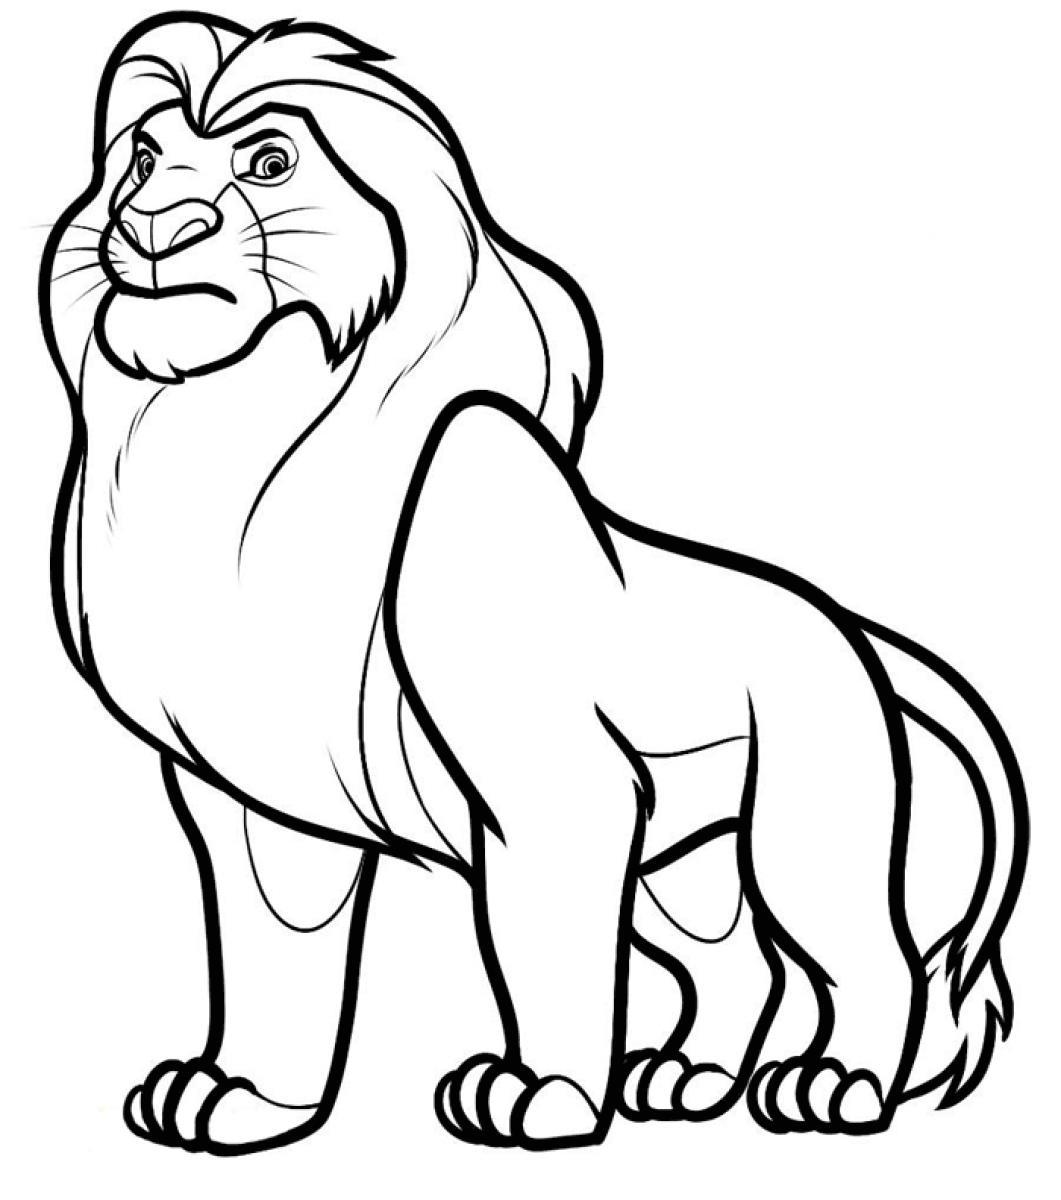 1061x1200 Luxury Lion Coloring Page In Line Drawings Free Pages Printable